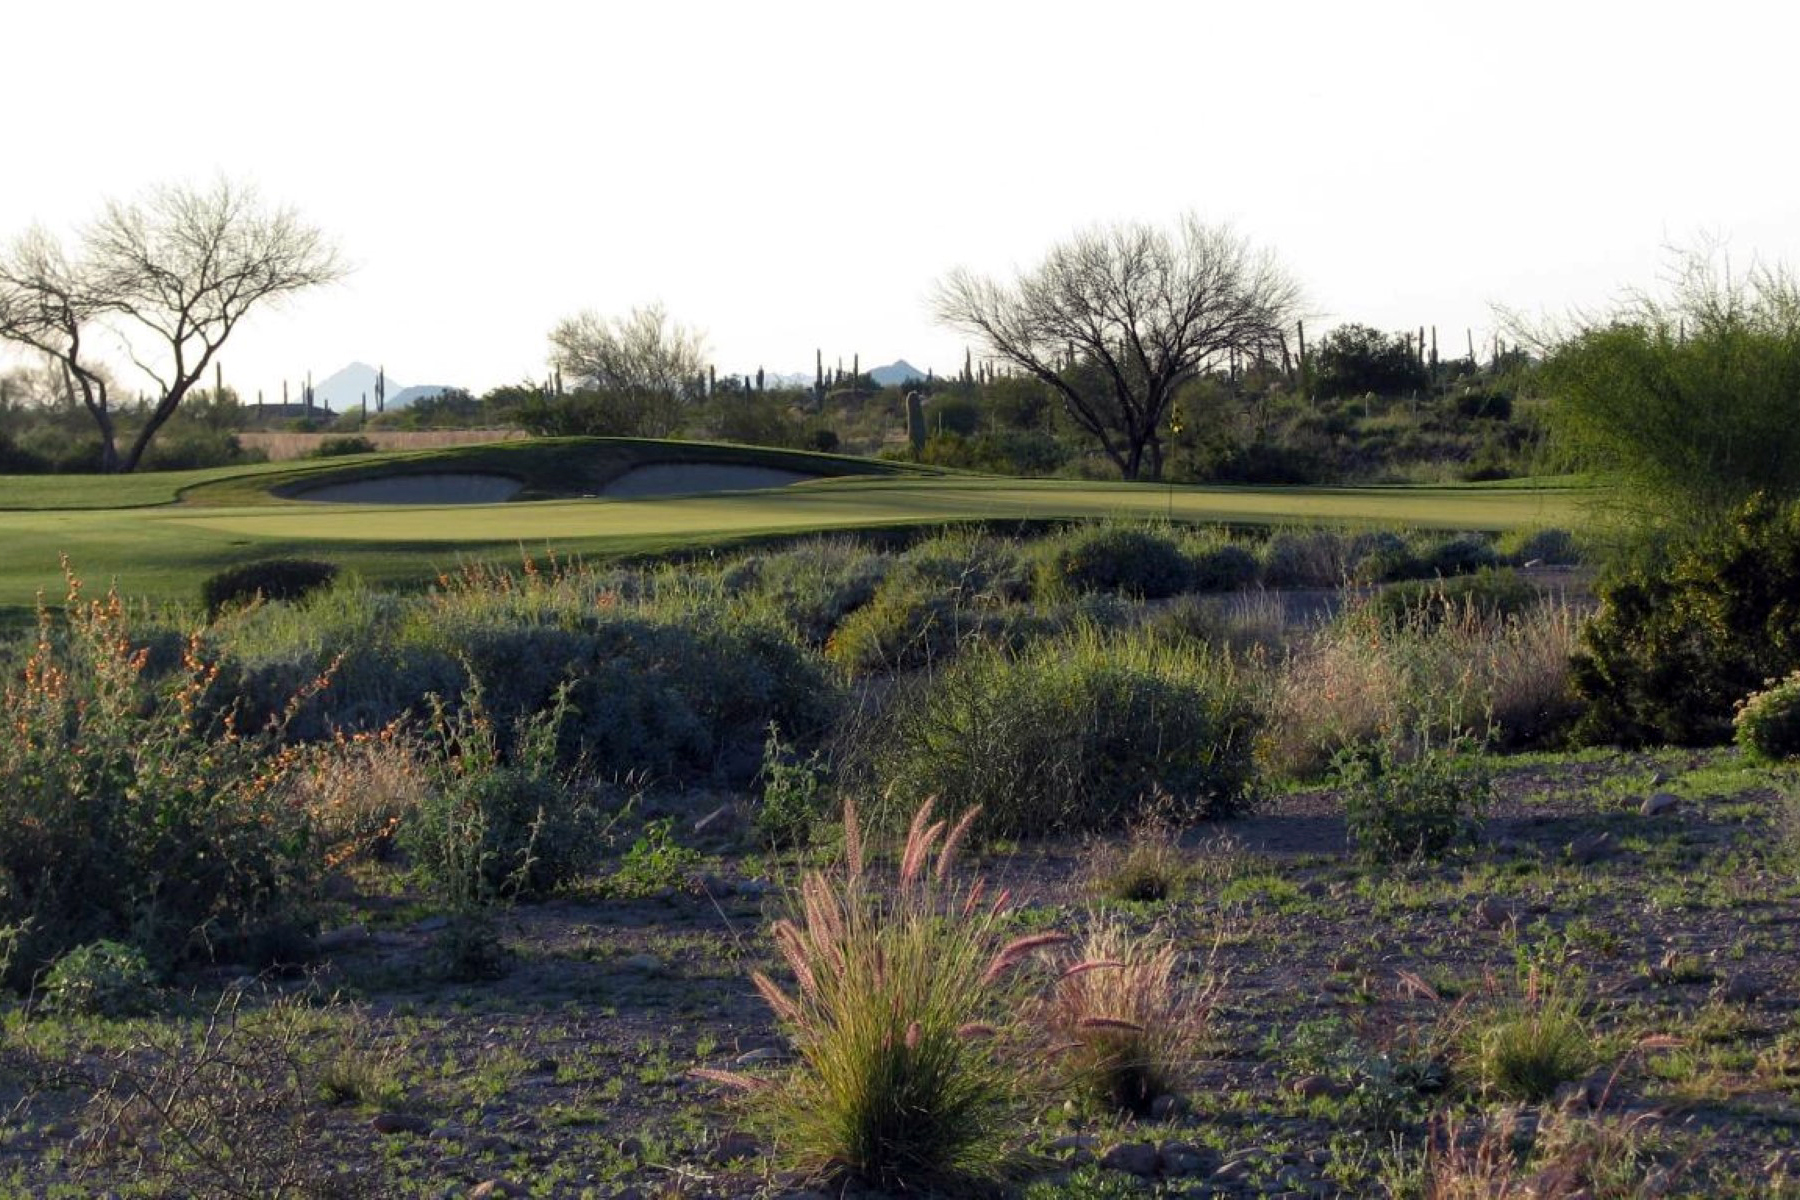 Terreno para Venda às .64 Acres Lot In The Private Gated Luxury Golf Community Of Superstition Mounta 2866 S Petroglyph Trail #64 Gold Canyon, Arizona, 85118 Estados Unidos